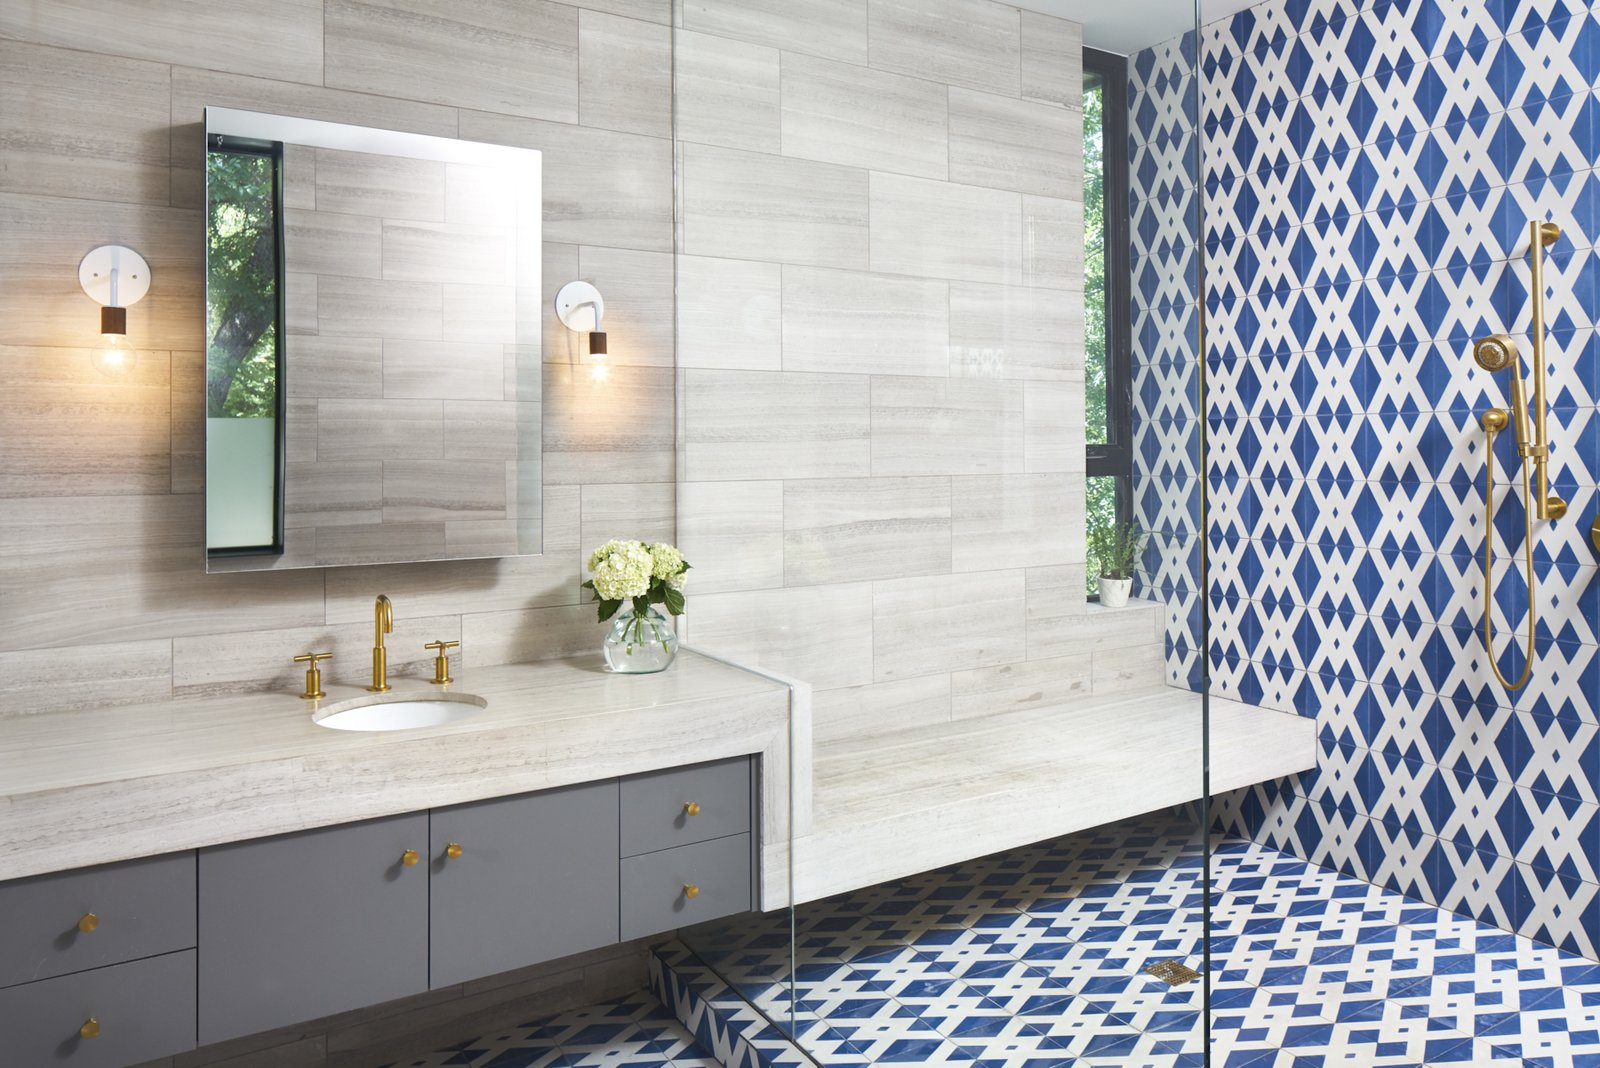 Master bathroom vanity and  'wet room'. Materials are encaustic concrete tile, limestone tile. Airole Way Residence by Jamie Chioco